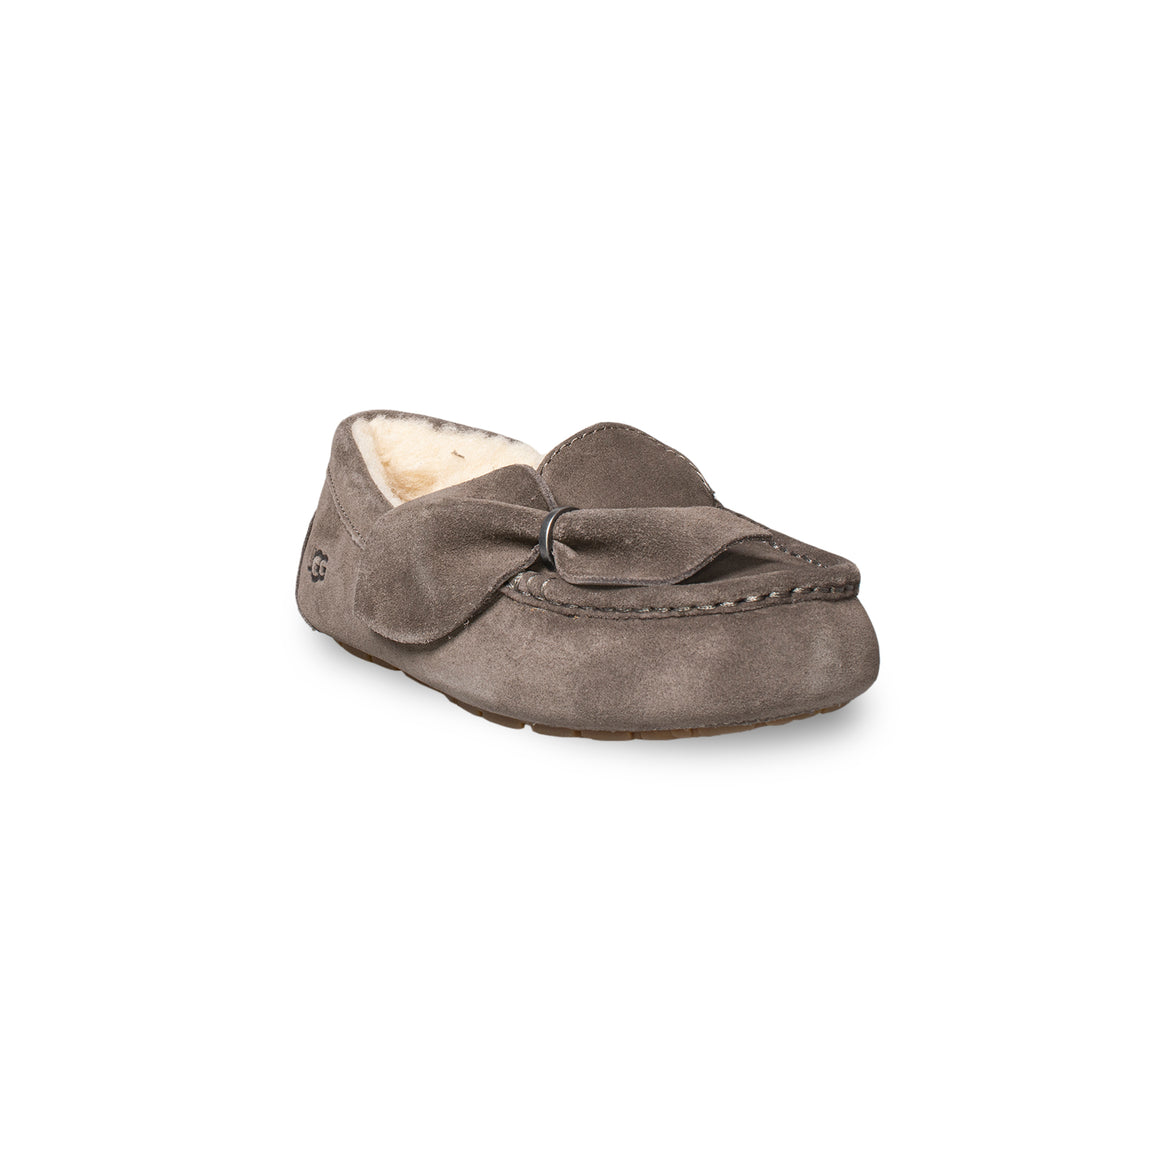 UGG Ansley Twist Mole Slippers - Women's